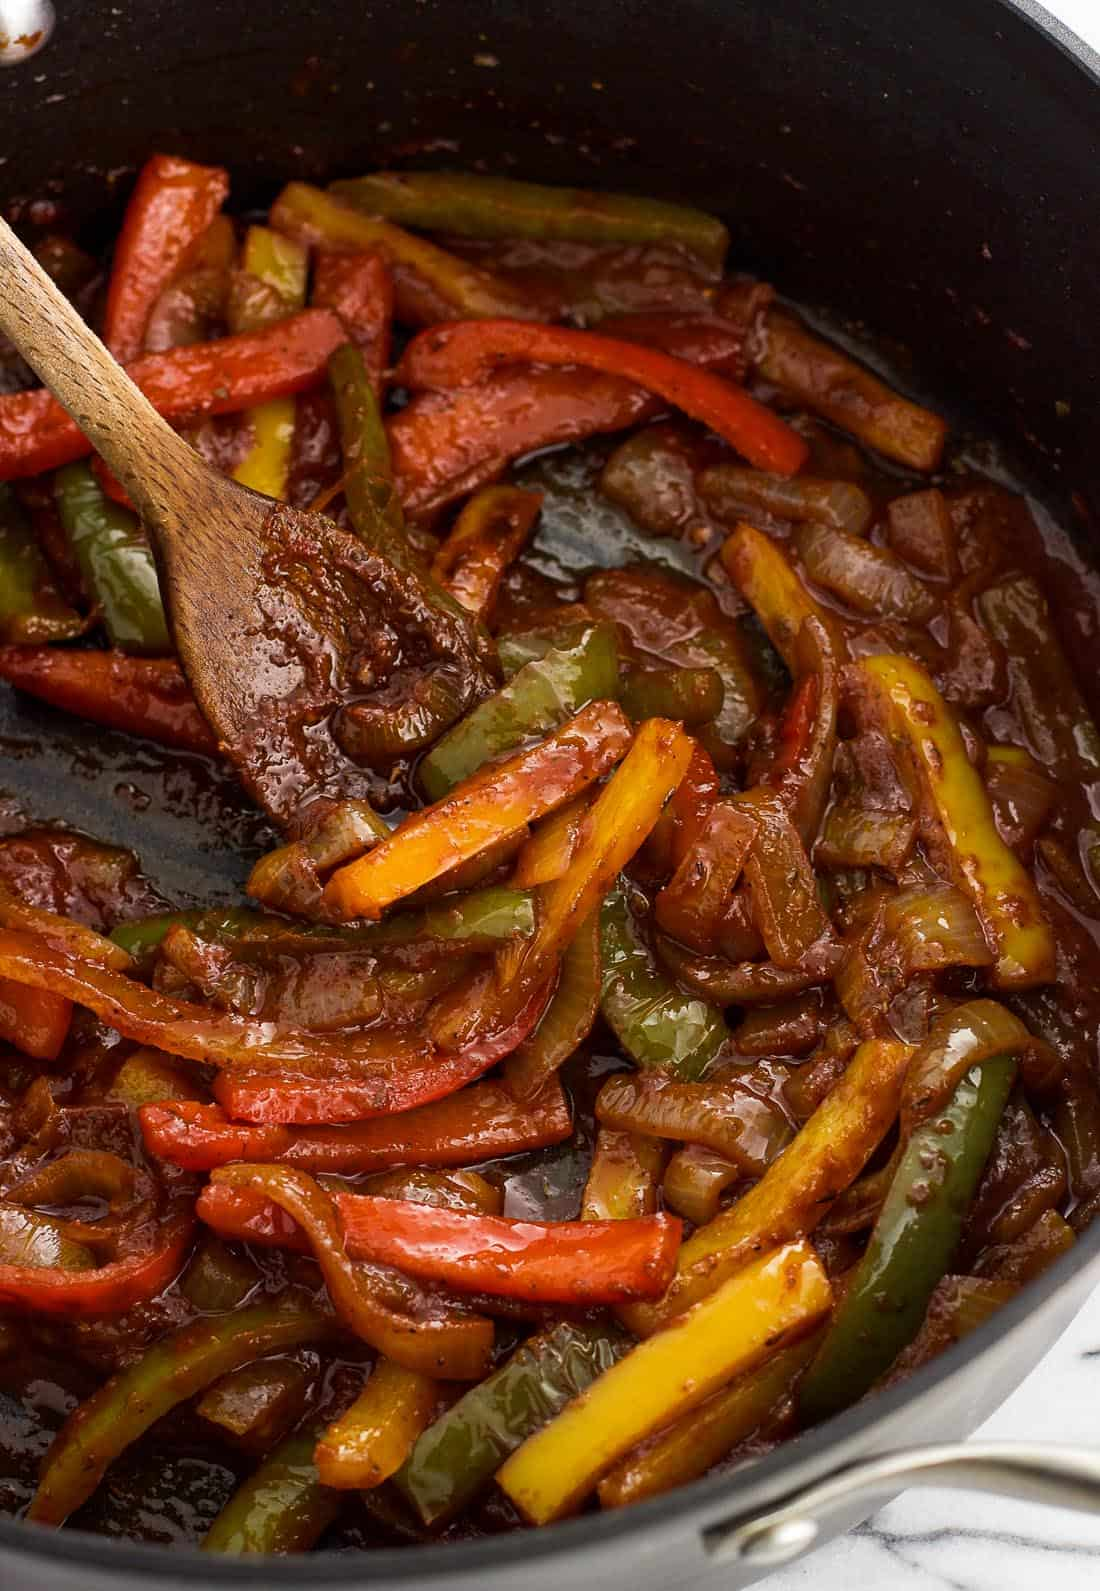 Sliced peppers and onions in a skillet with a thick tomato sauce